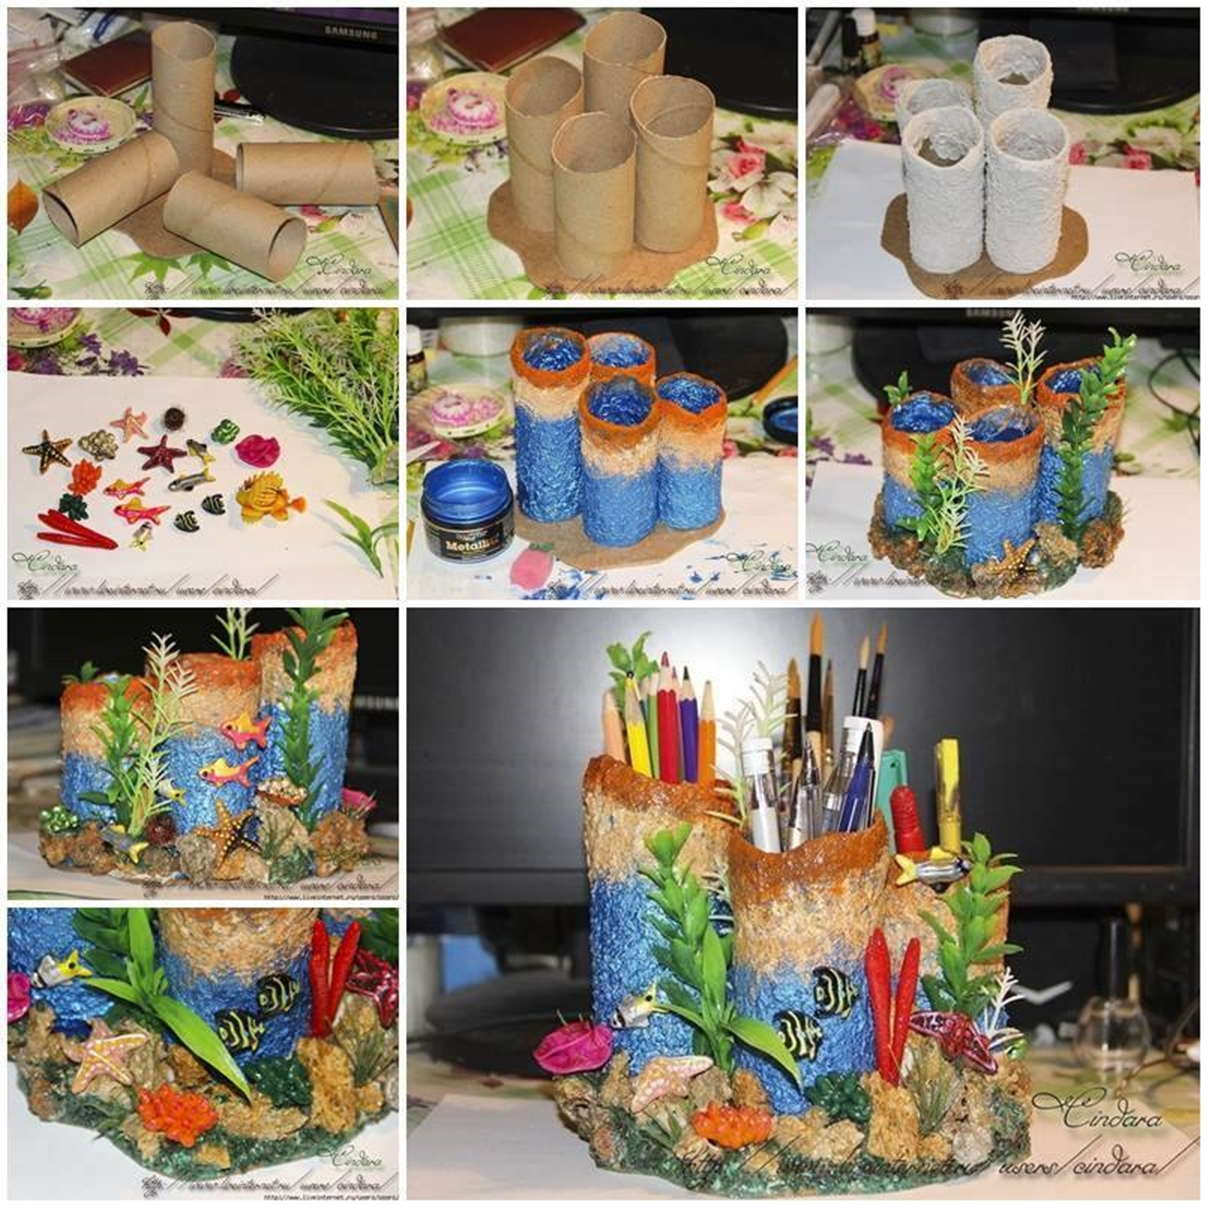 Homemade Pencil Holders Wonderful Diy Paper Rolls Into Coral Reef Pencil Holder